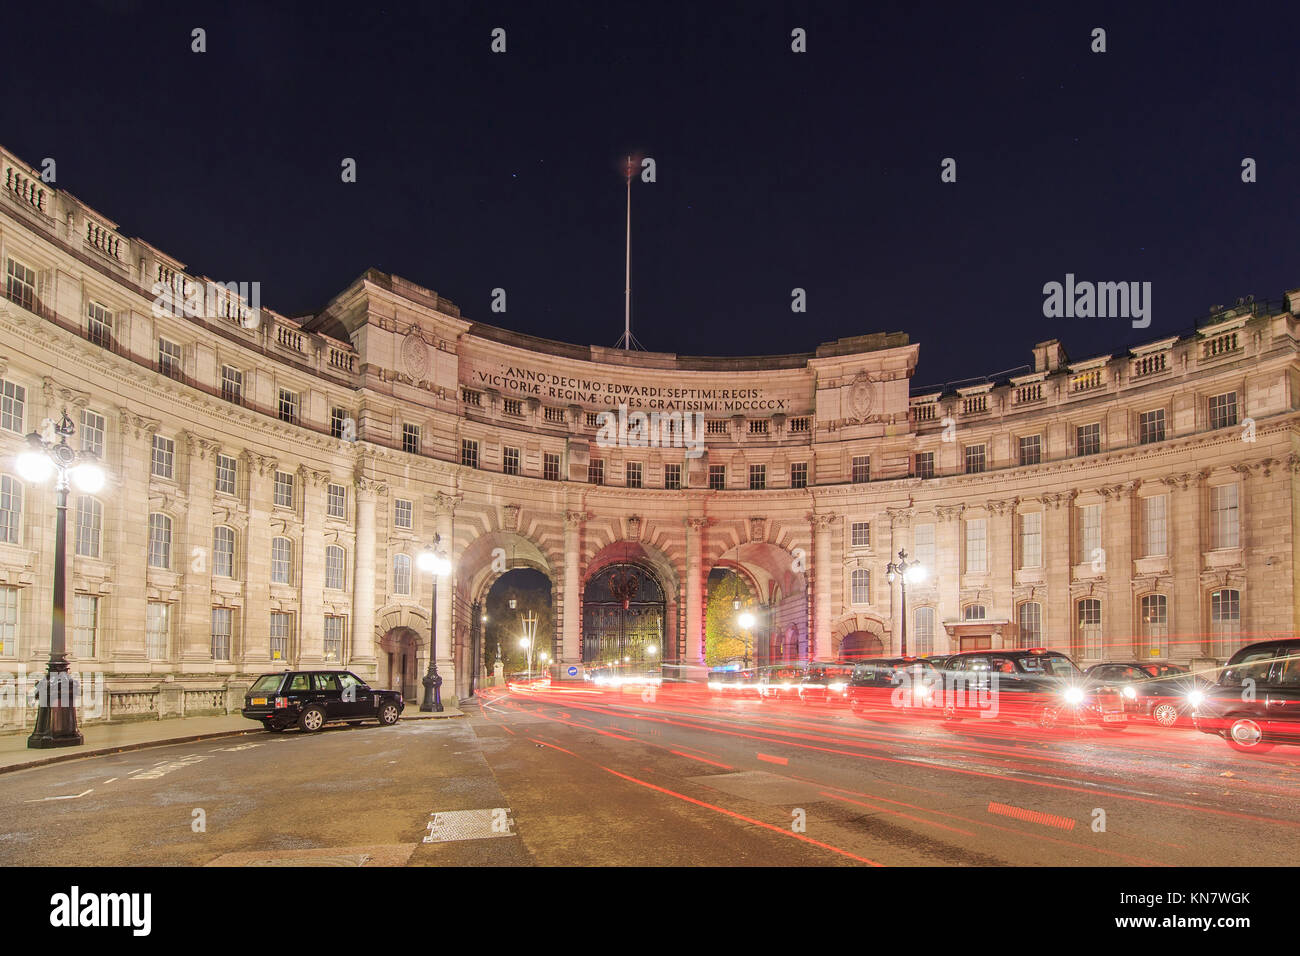 London, NOV 13: Night view of the Admiralty Arch on NOV 13, 2015 at London, United Kingdom Stock Photo